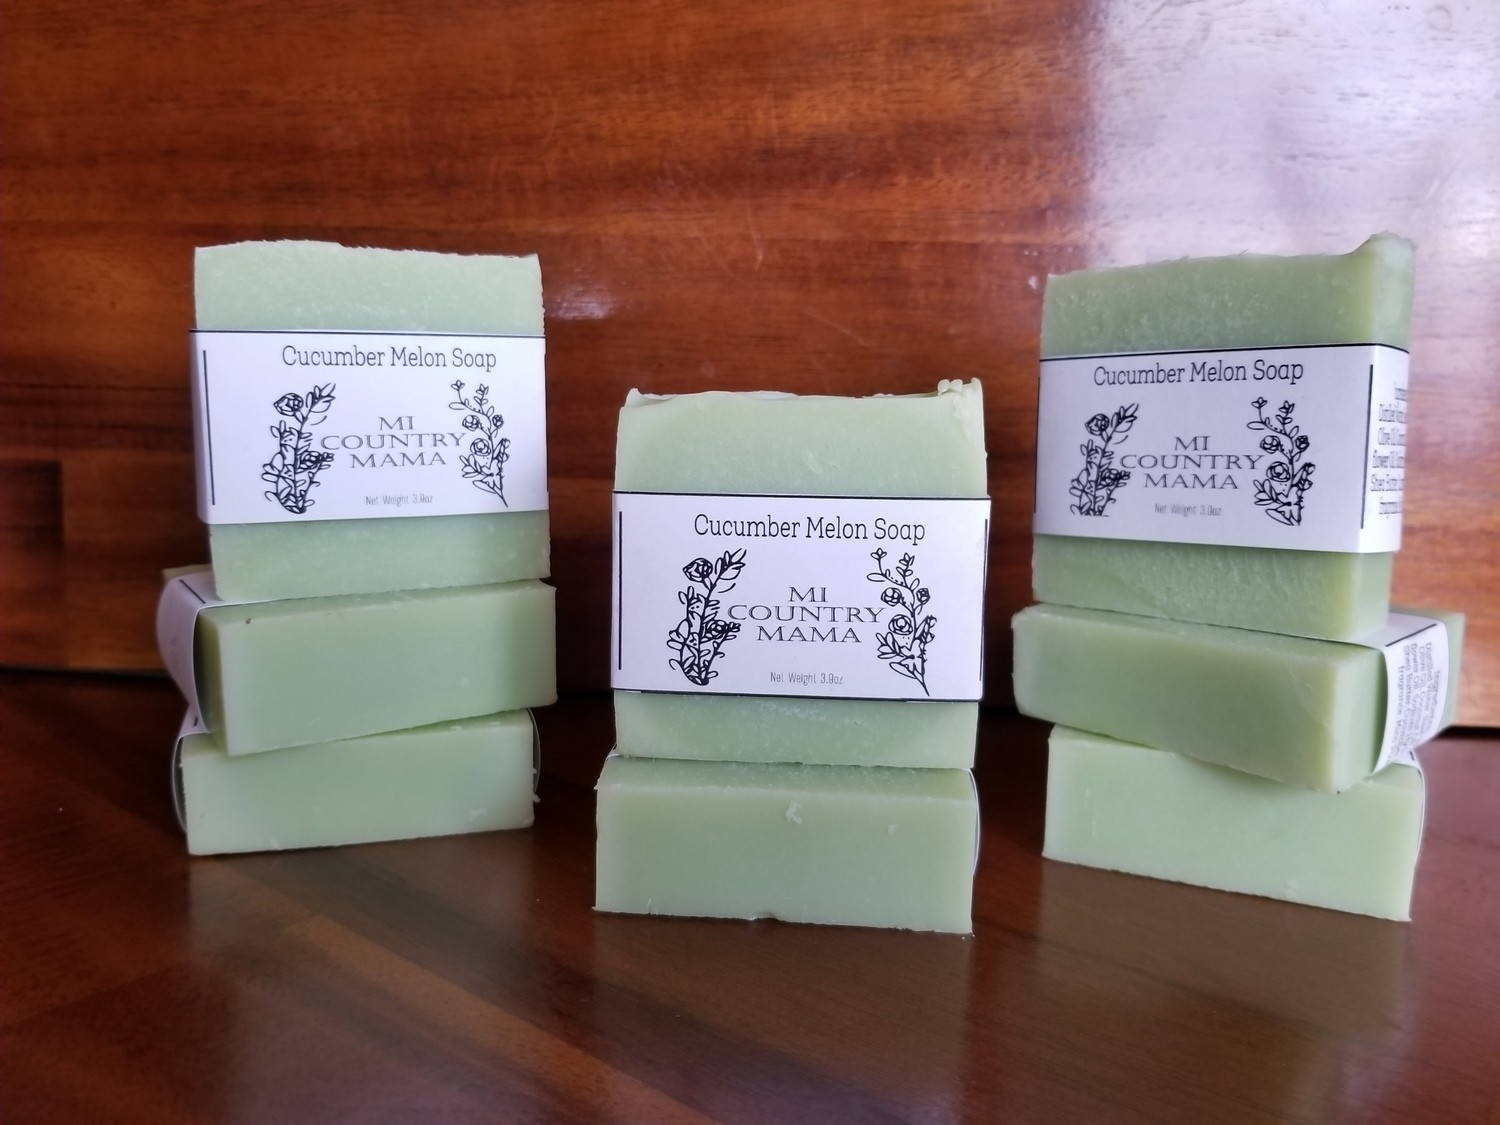 Cucumber Melon Milk Soap 3oz